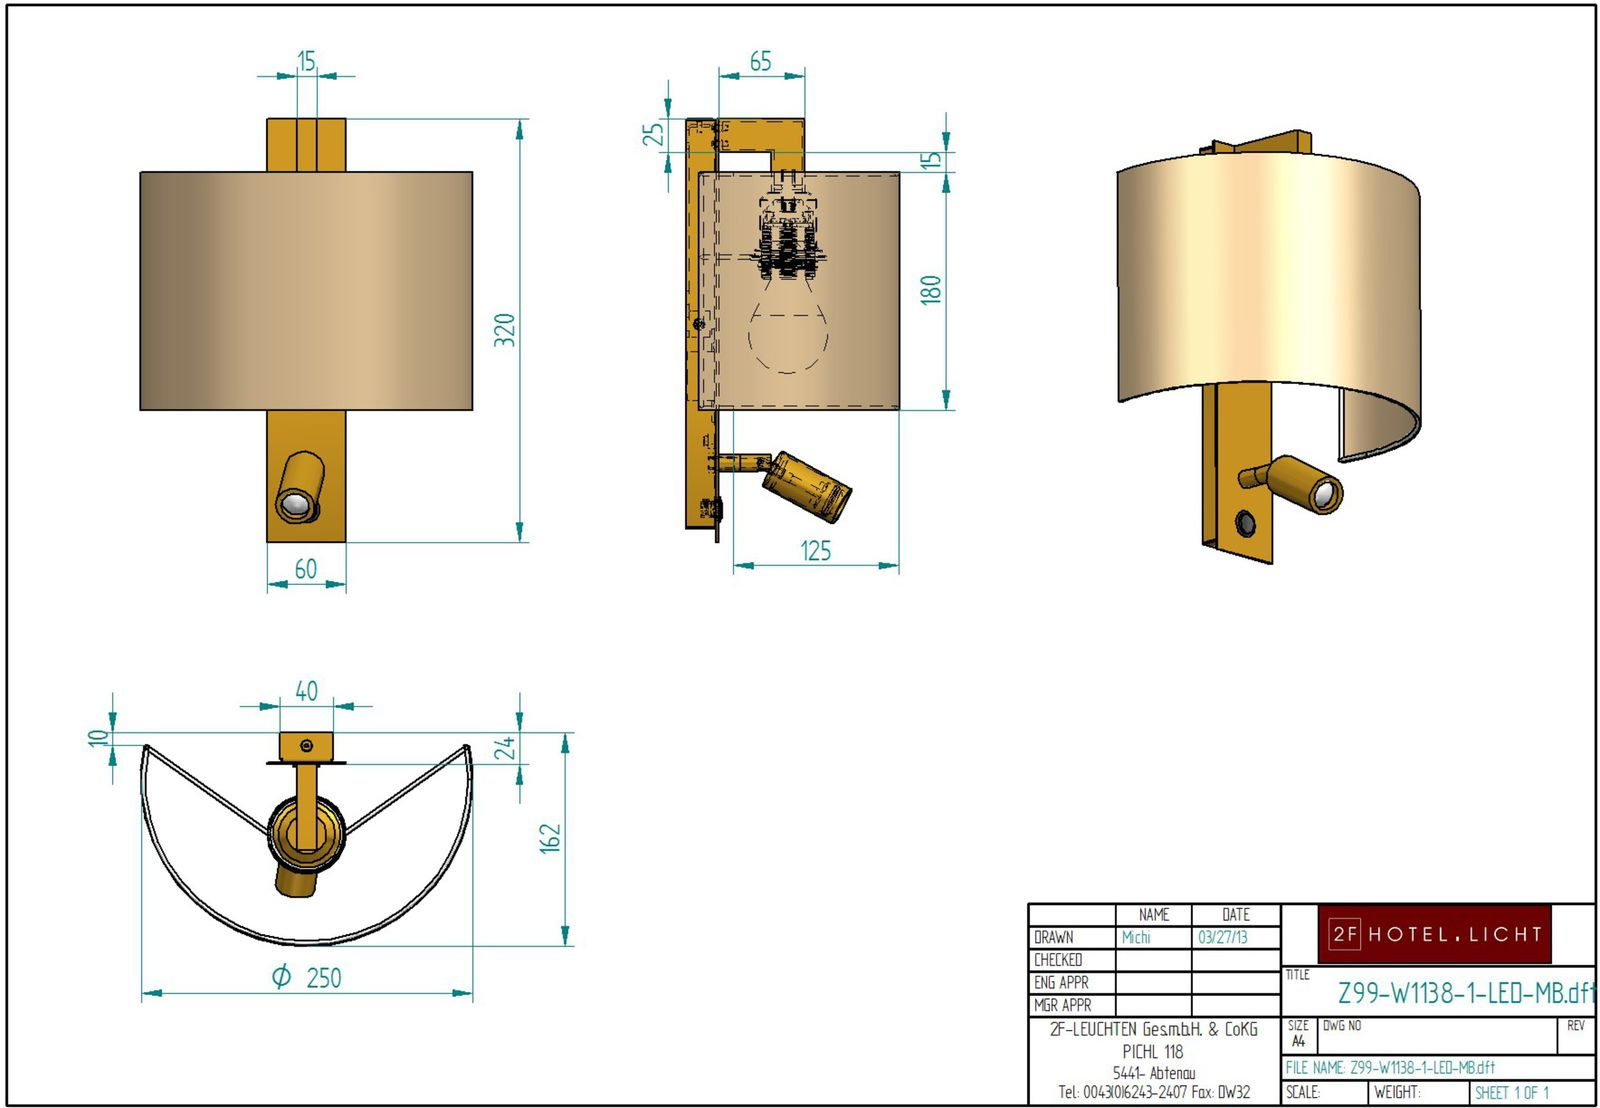 Wall lamp, L:162mm, wide:250mm, height=320mm, surface: Metall MB, techn. Date: 1xE27,60W, 1x2W LED 700mA